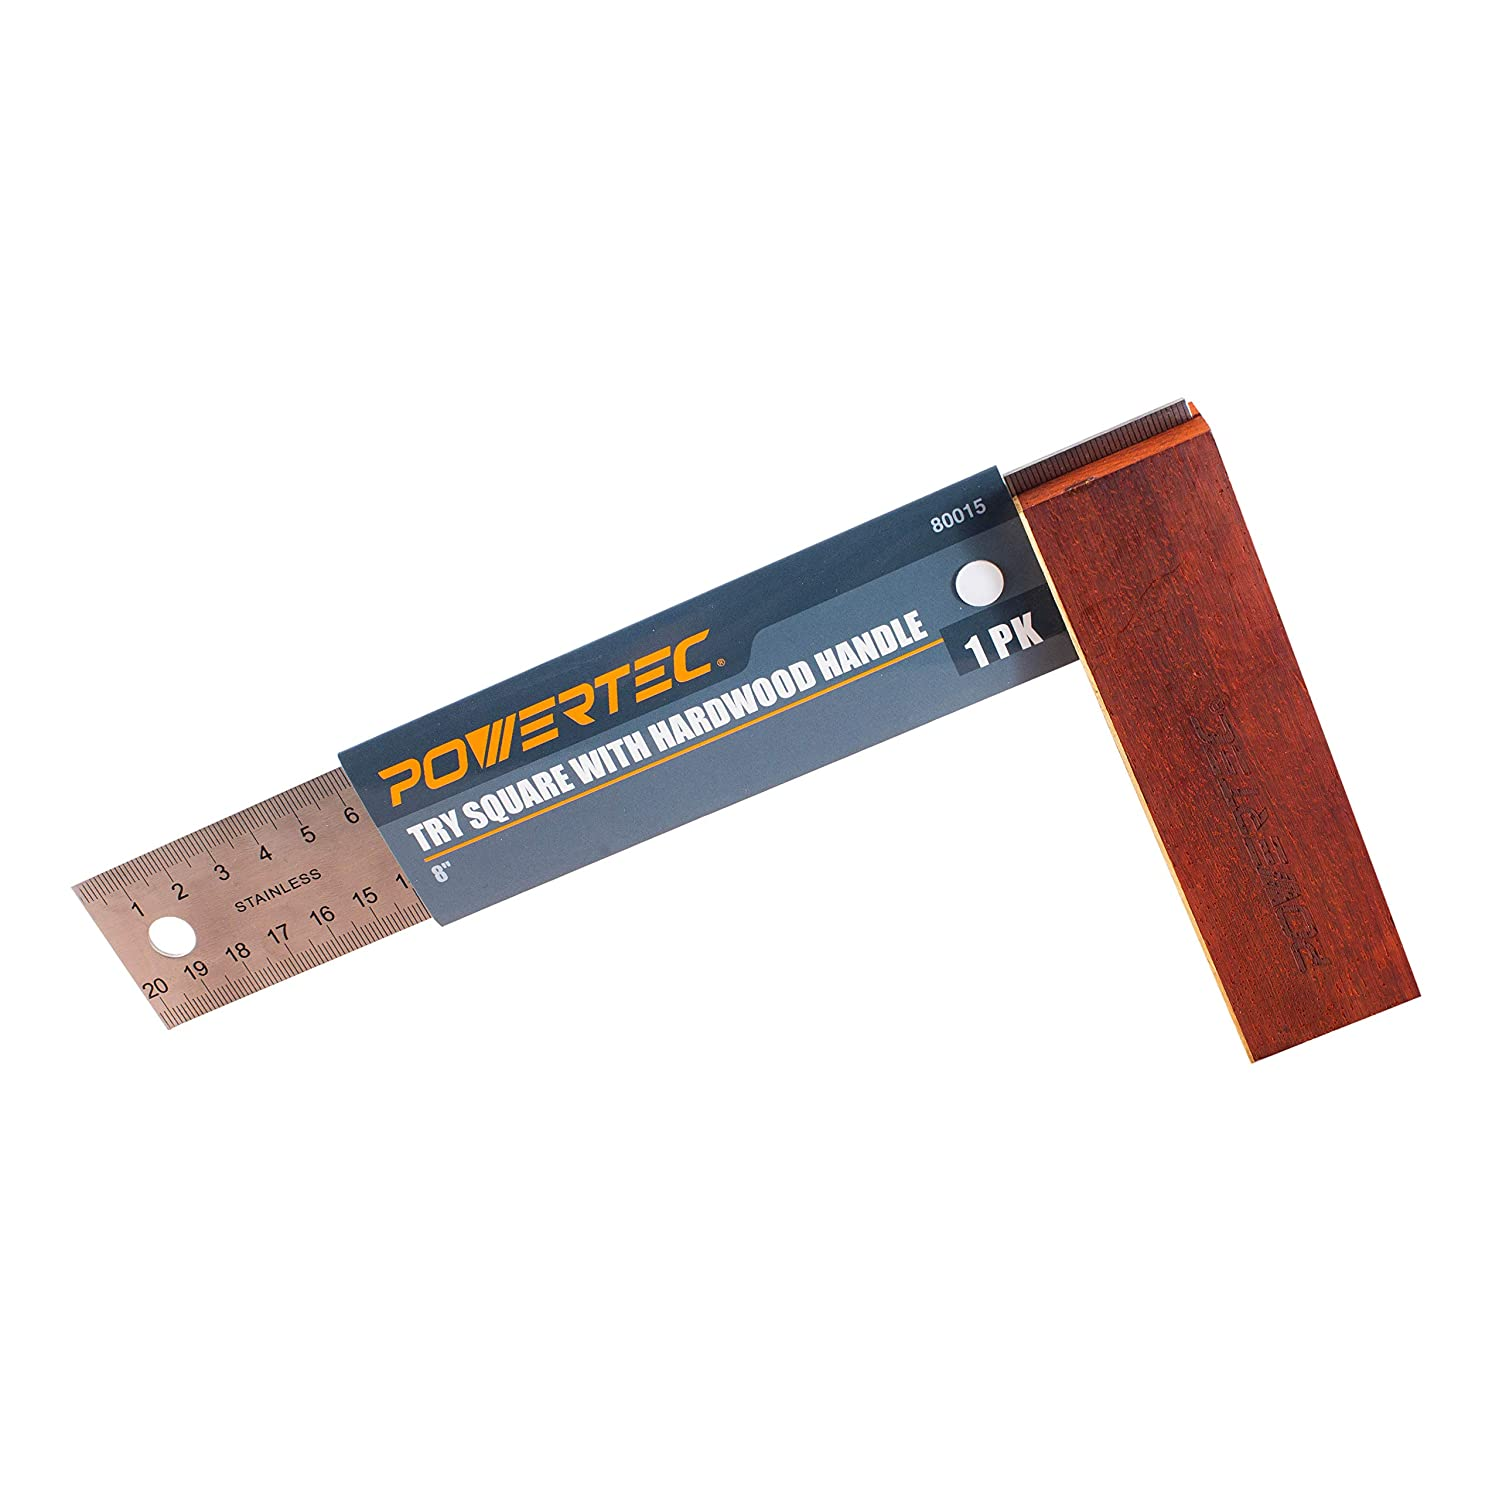 Premium Stainless Steel Ruler The Ultimate Gift for any Woodworking Shop Brass Bound Handle POWERTEC 80015 Try Square With Hardwood Handle A Carpenter/'s and Machinist/'s Essential 8 Inch